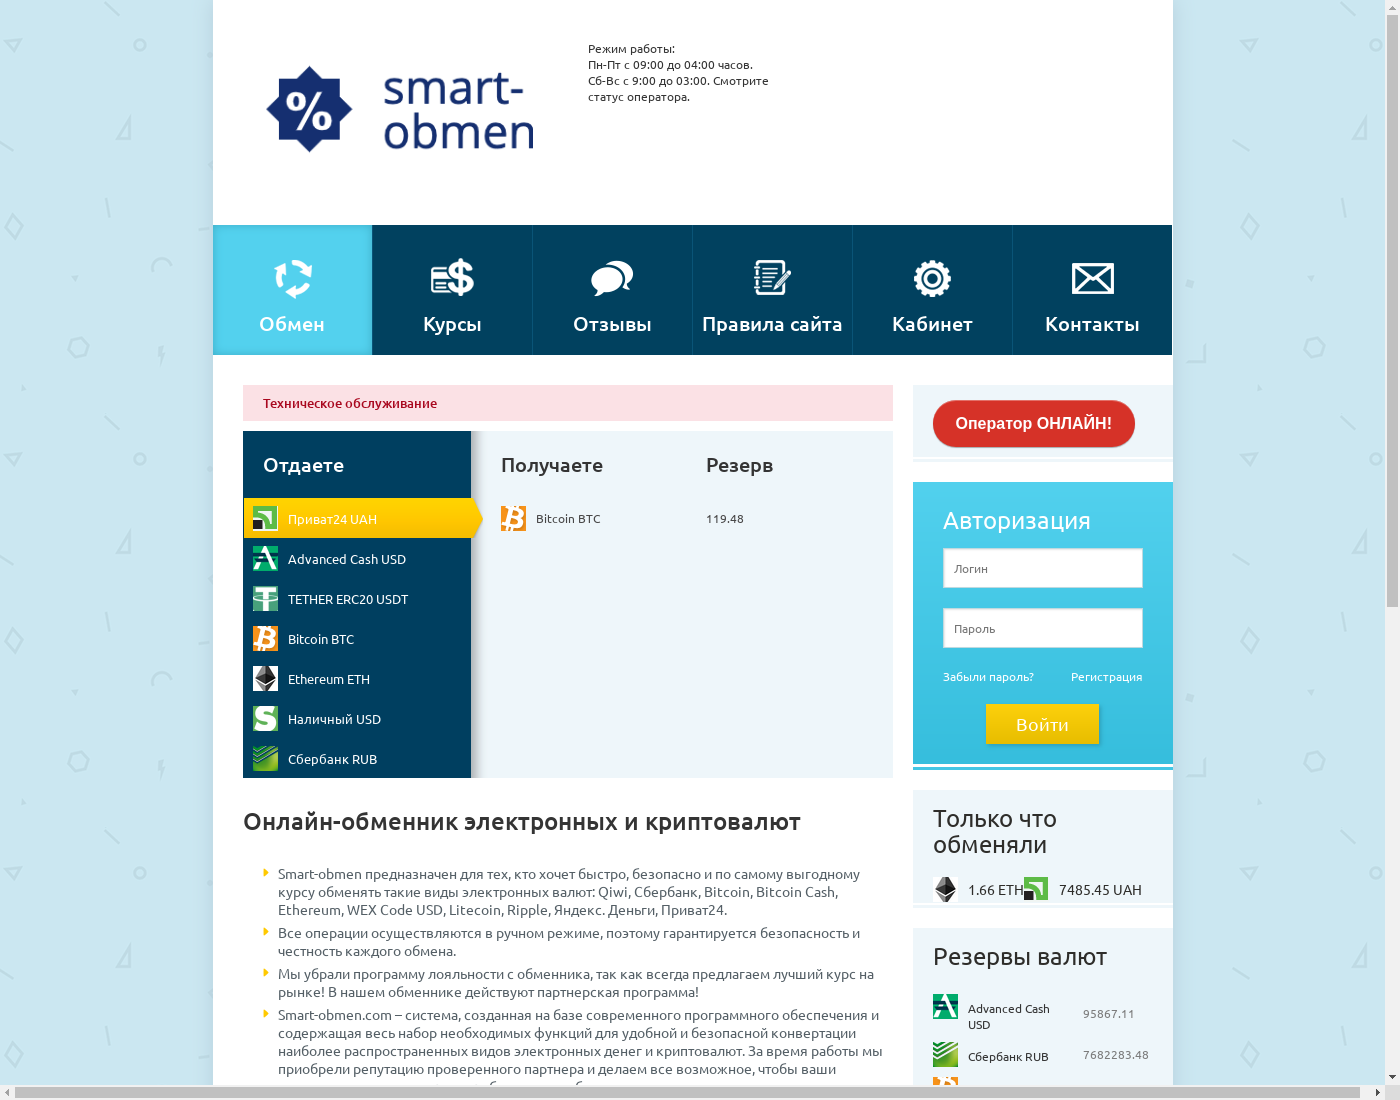 Smart-obmen user interface: the home page in English